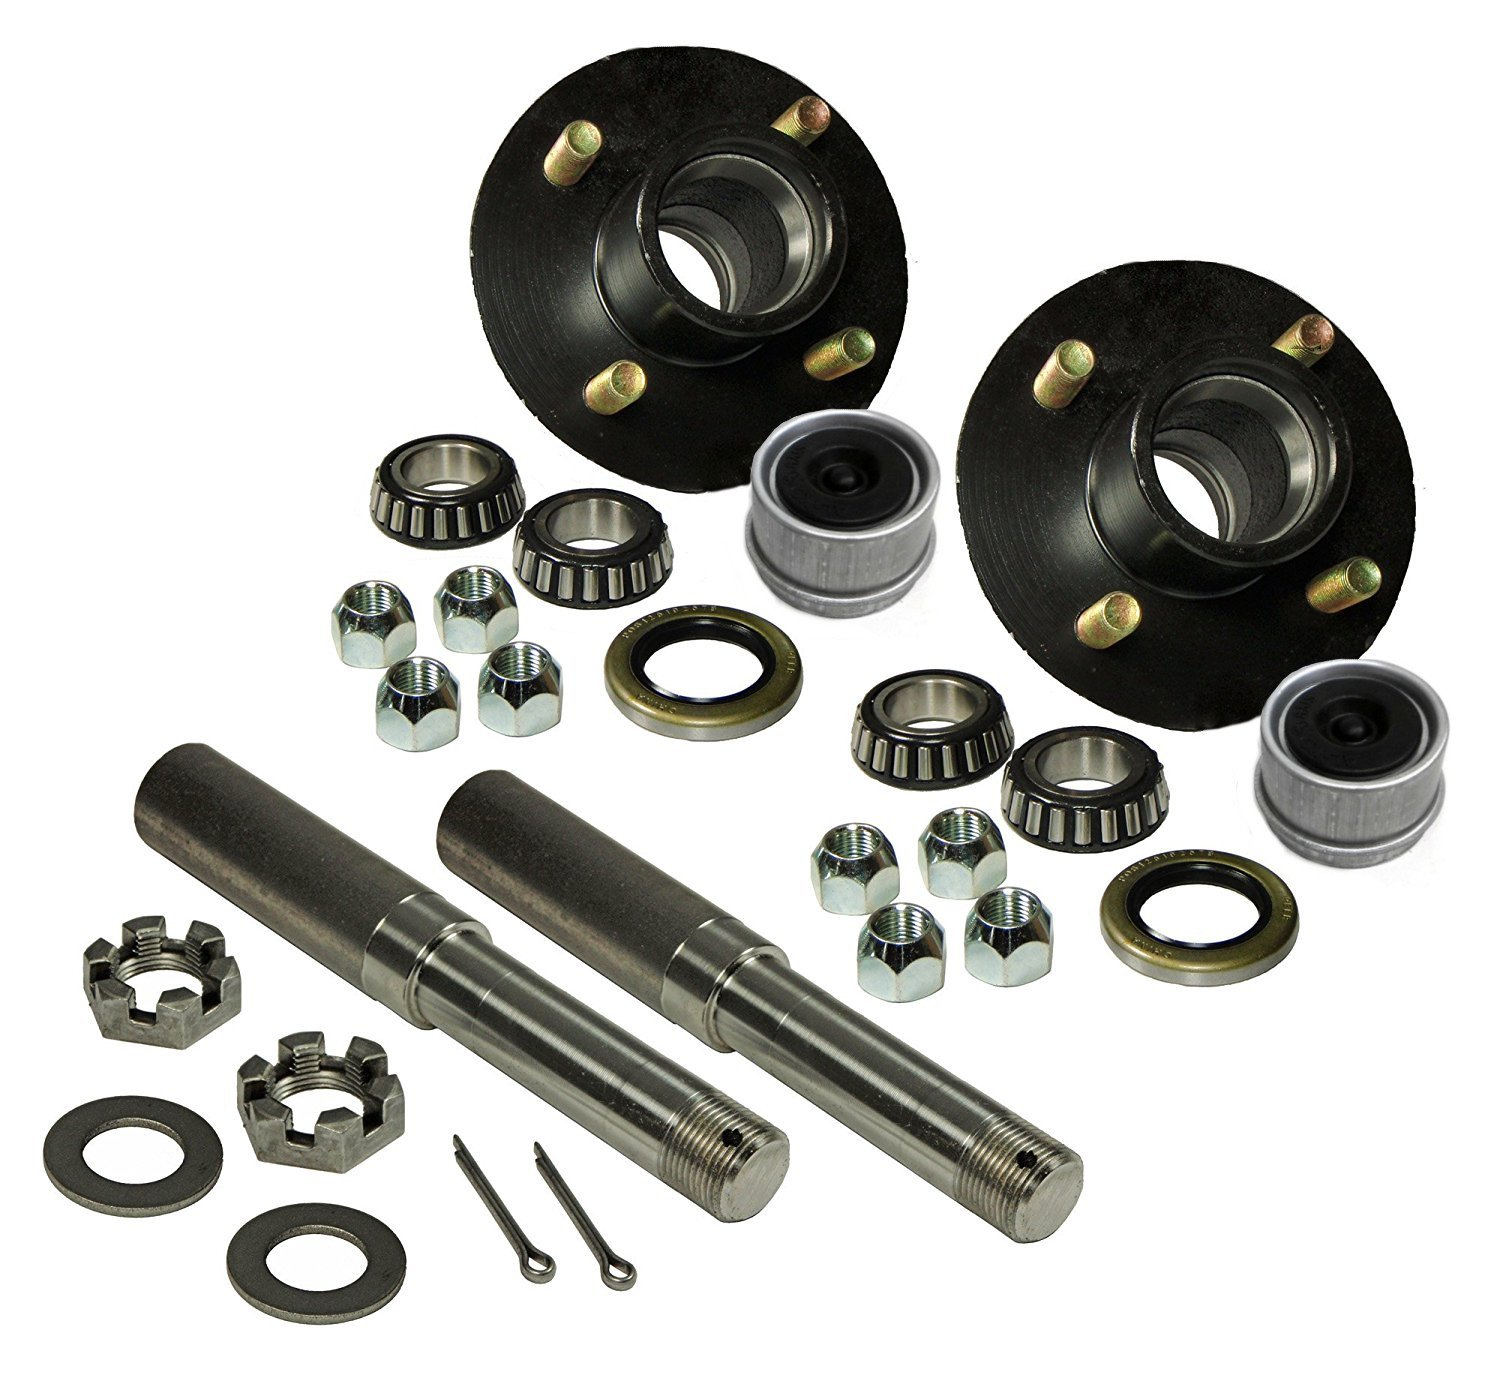 R and P Carriages Build Your Own Trailer Axle 4 x 4 Bolt Hub Assembly with 1'' Straight Round Spindles & Bearings by R and P Carriages